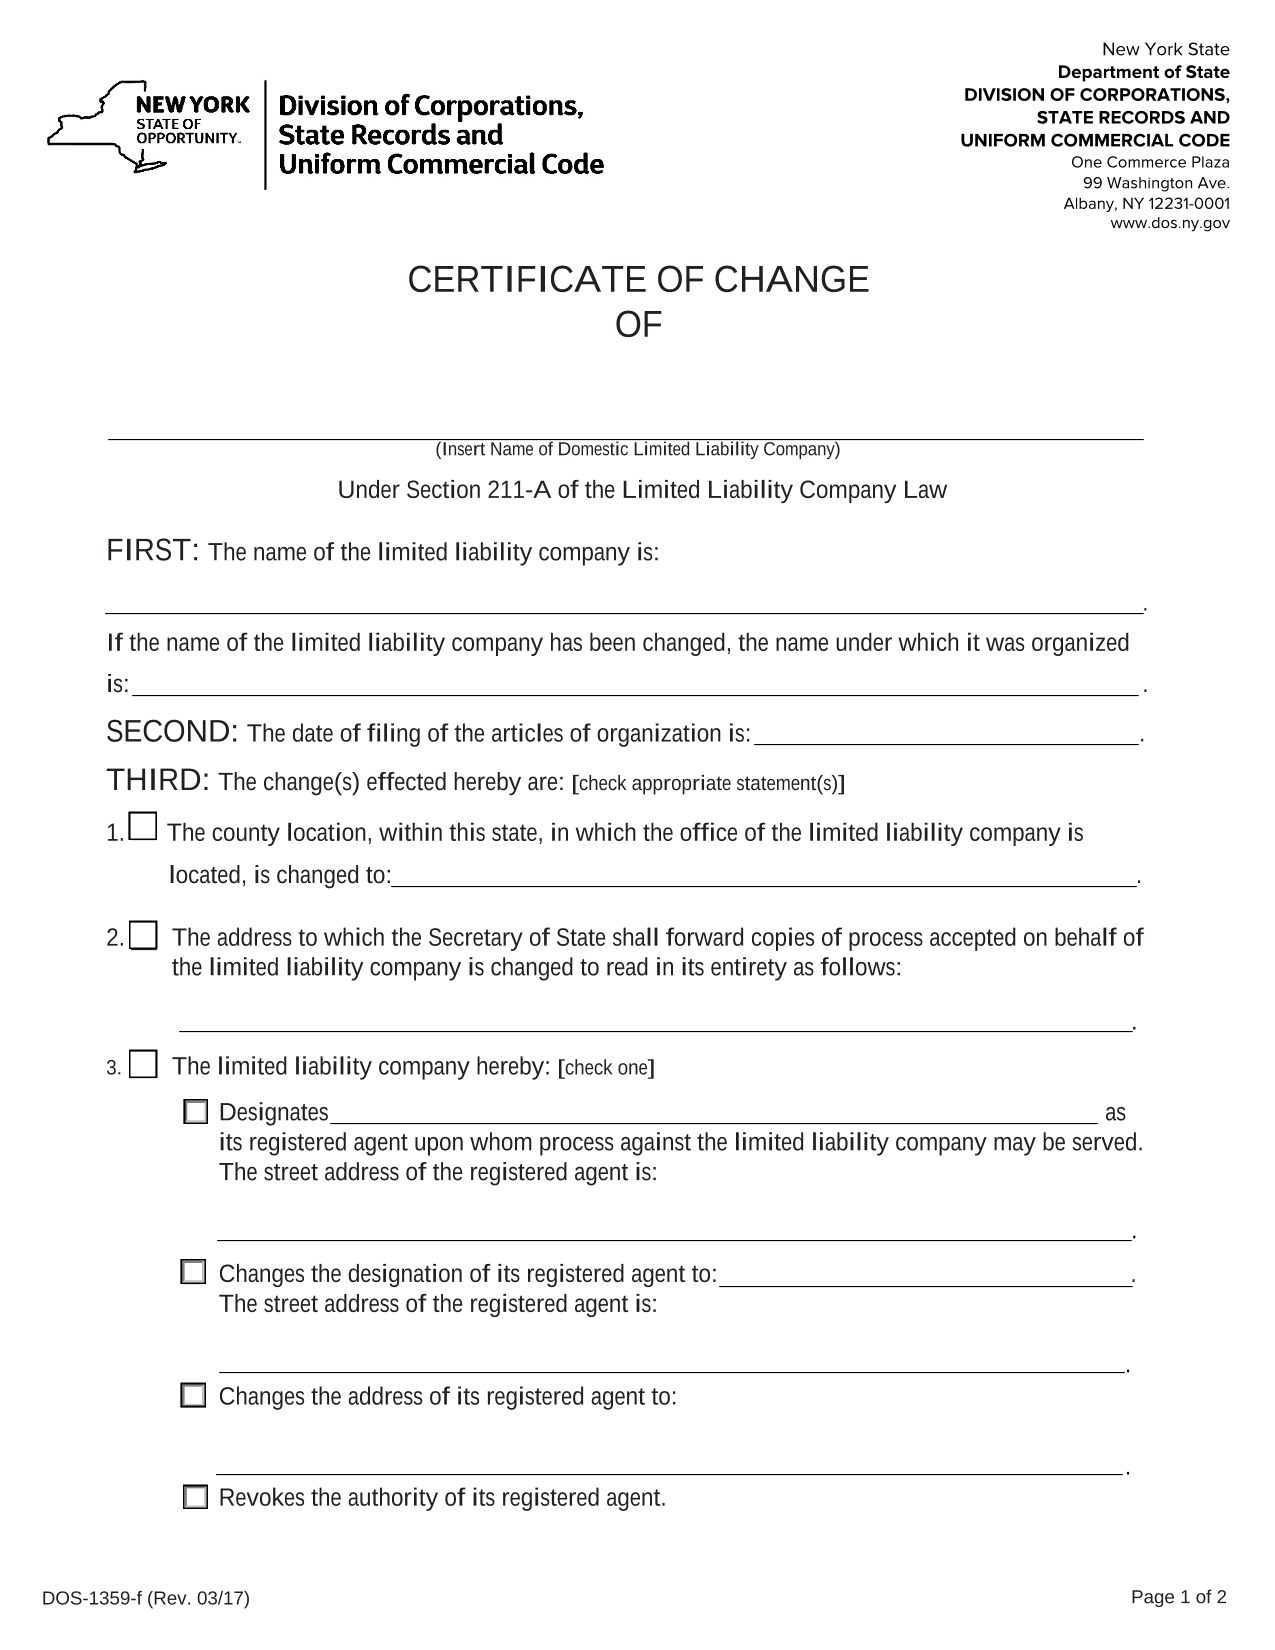 new-york-llc-certificate-of-change